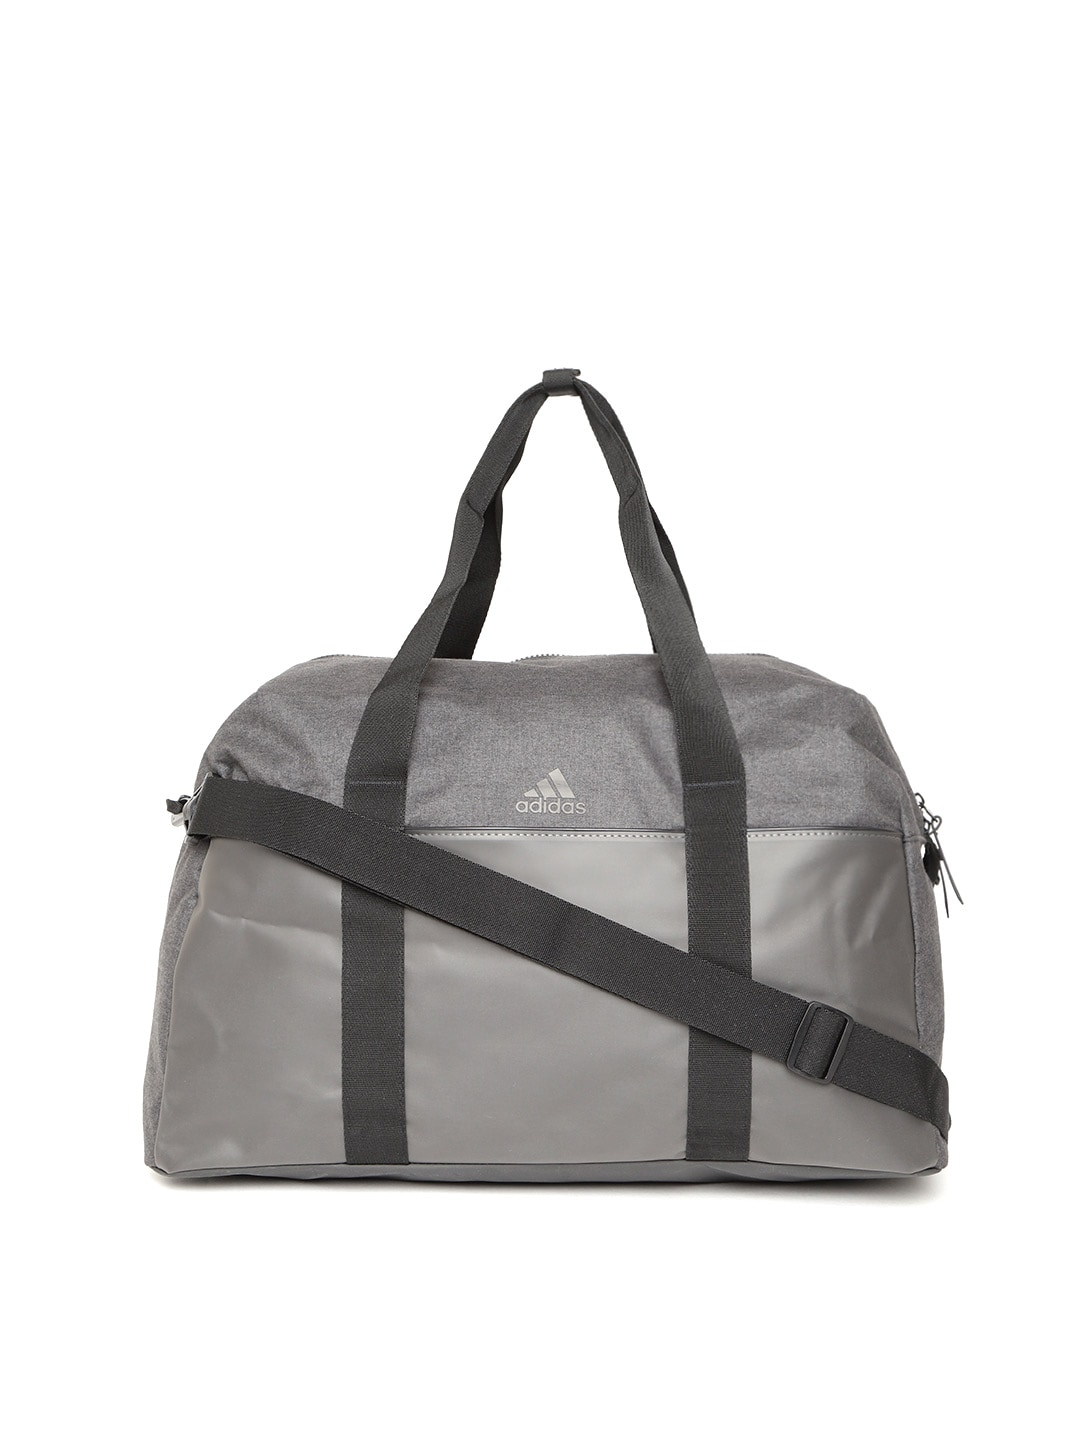 9fe02e38cab0 Gym Bag - Buy Gym Bags for Men